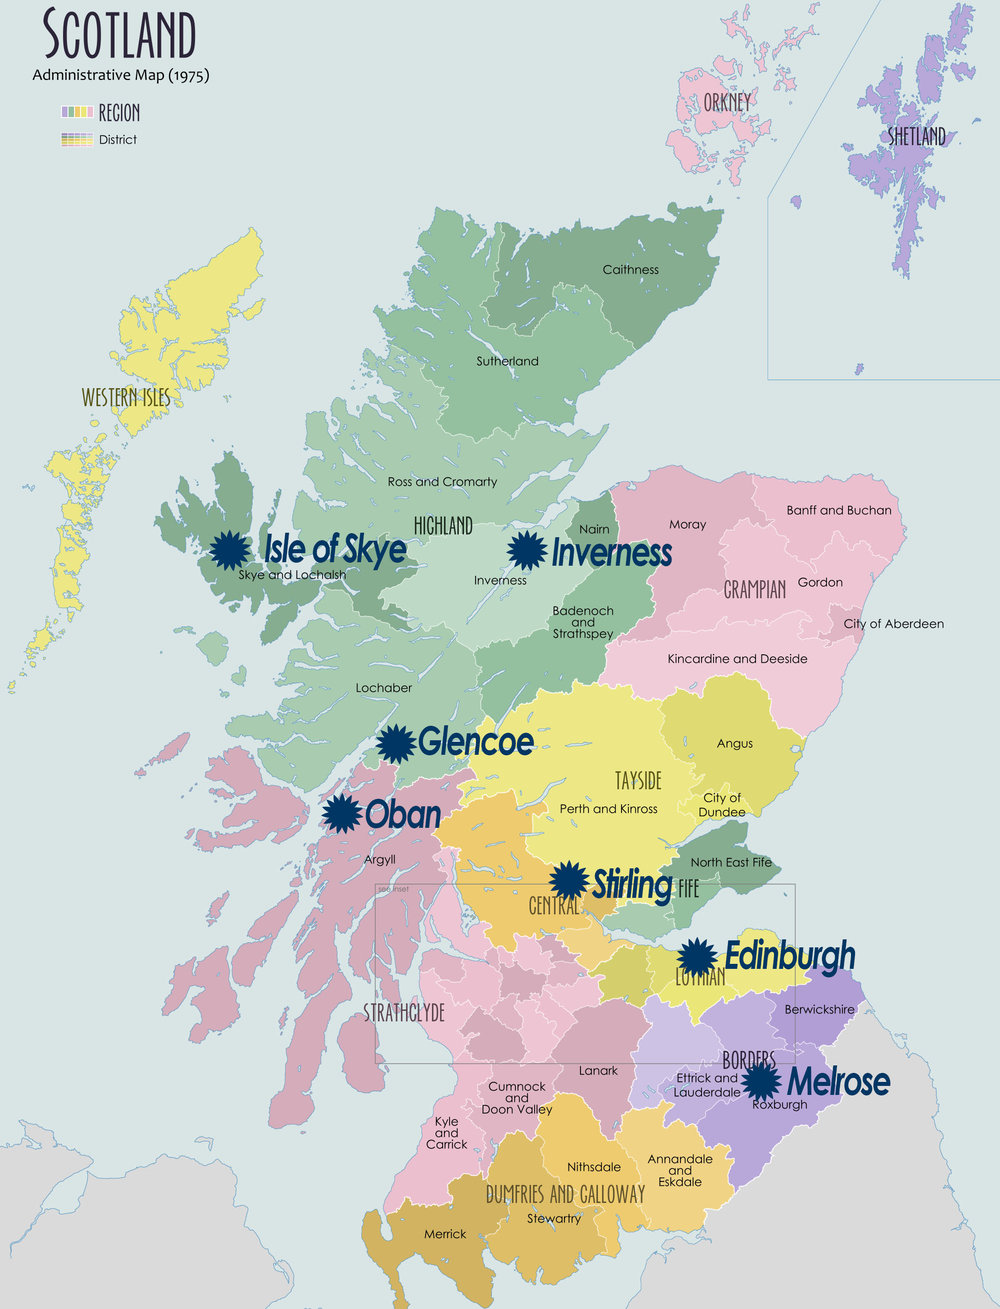 Scotland_1974_Administrative_Map.jpg